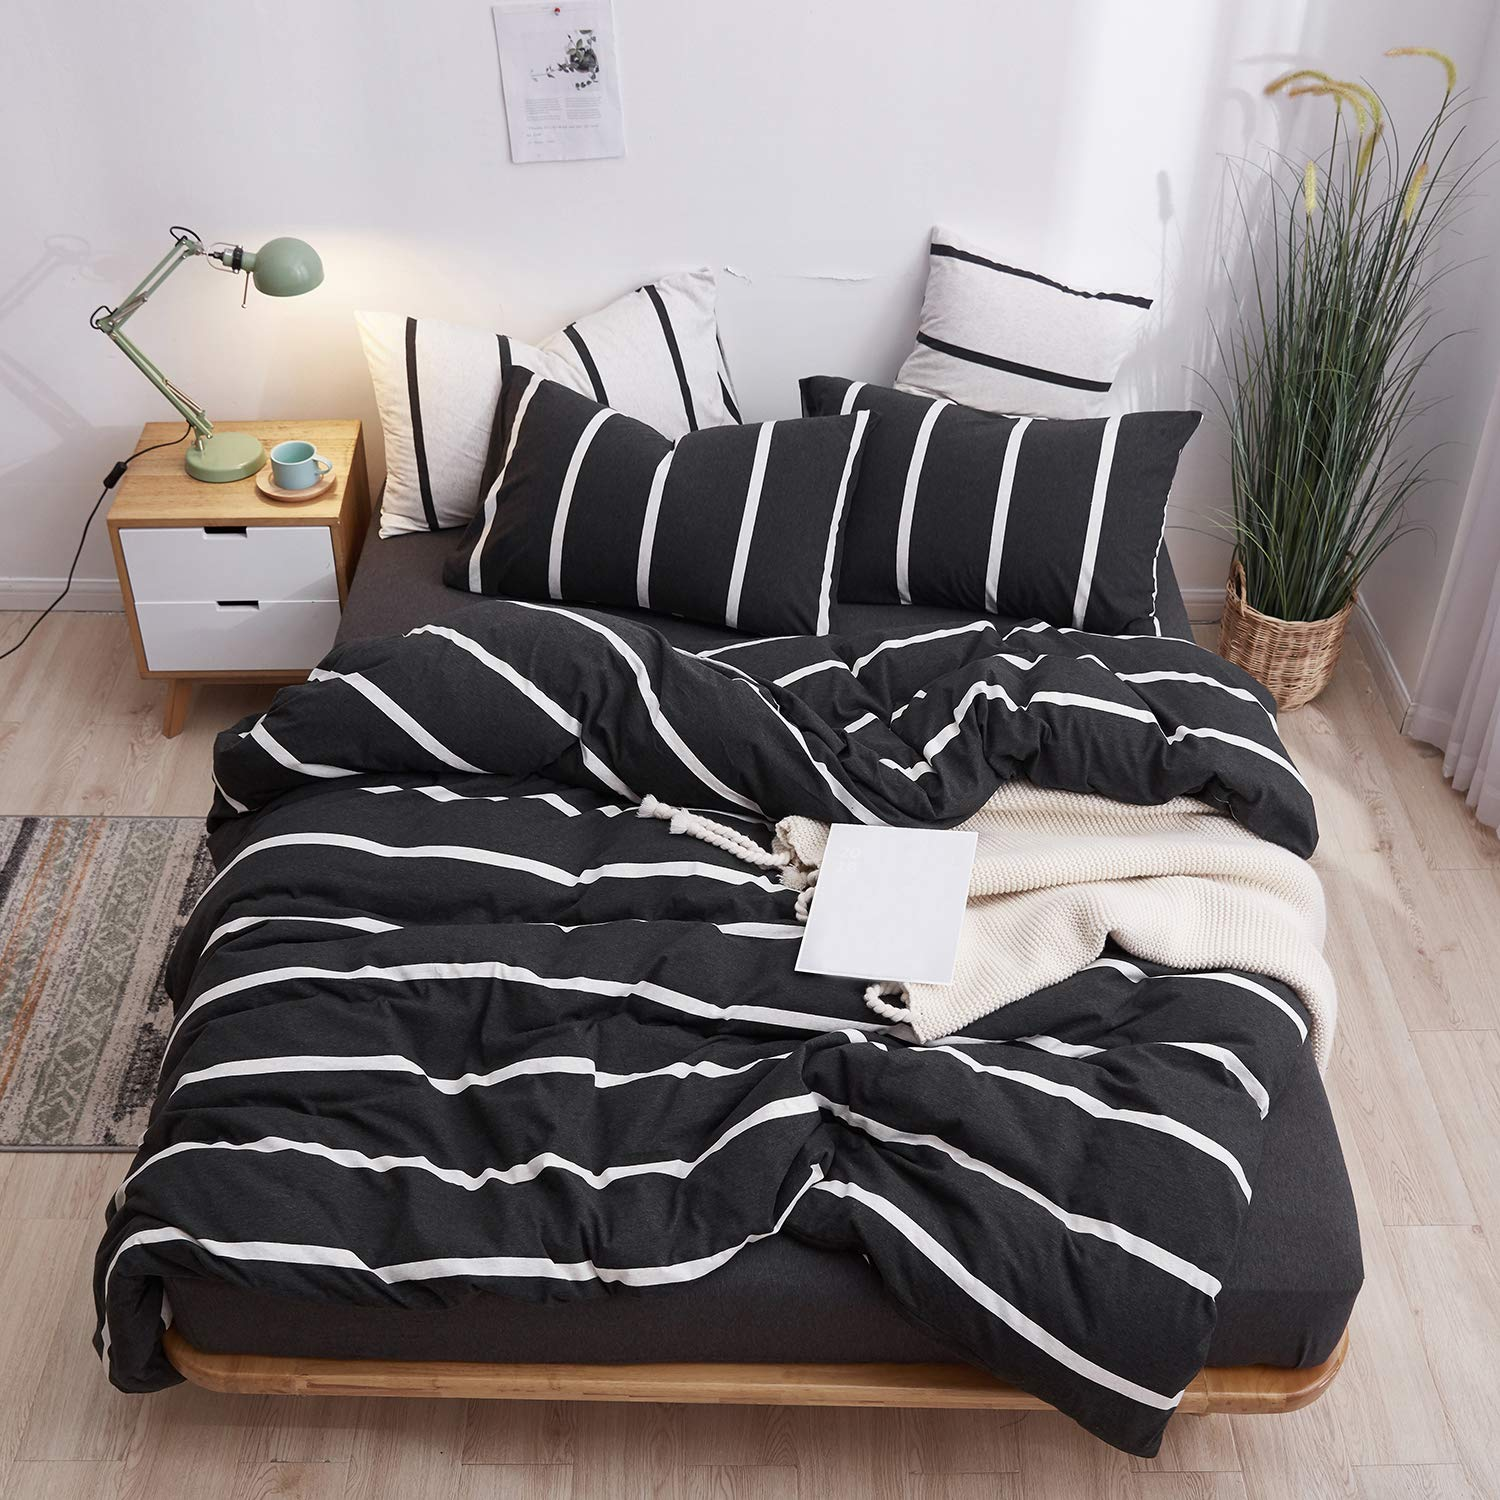 LIFETOWN Jersey Knit Cotton Duvet Cover Twin, 1 Duvet Cover and 2 Pillowcases, Striped Duvet Cover Set, Extremely Soft and Breathable (Twin/Twin XL, Black/White Stripes)